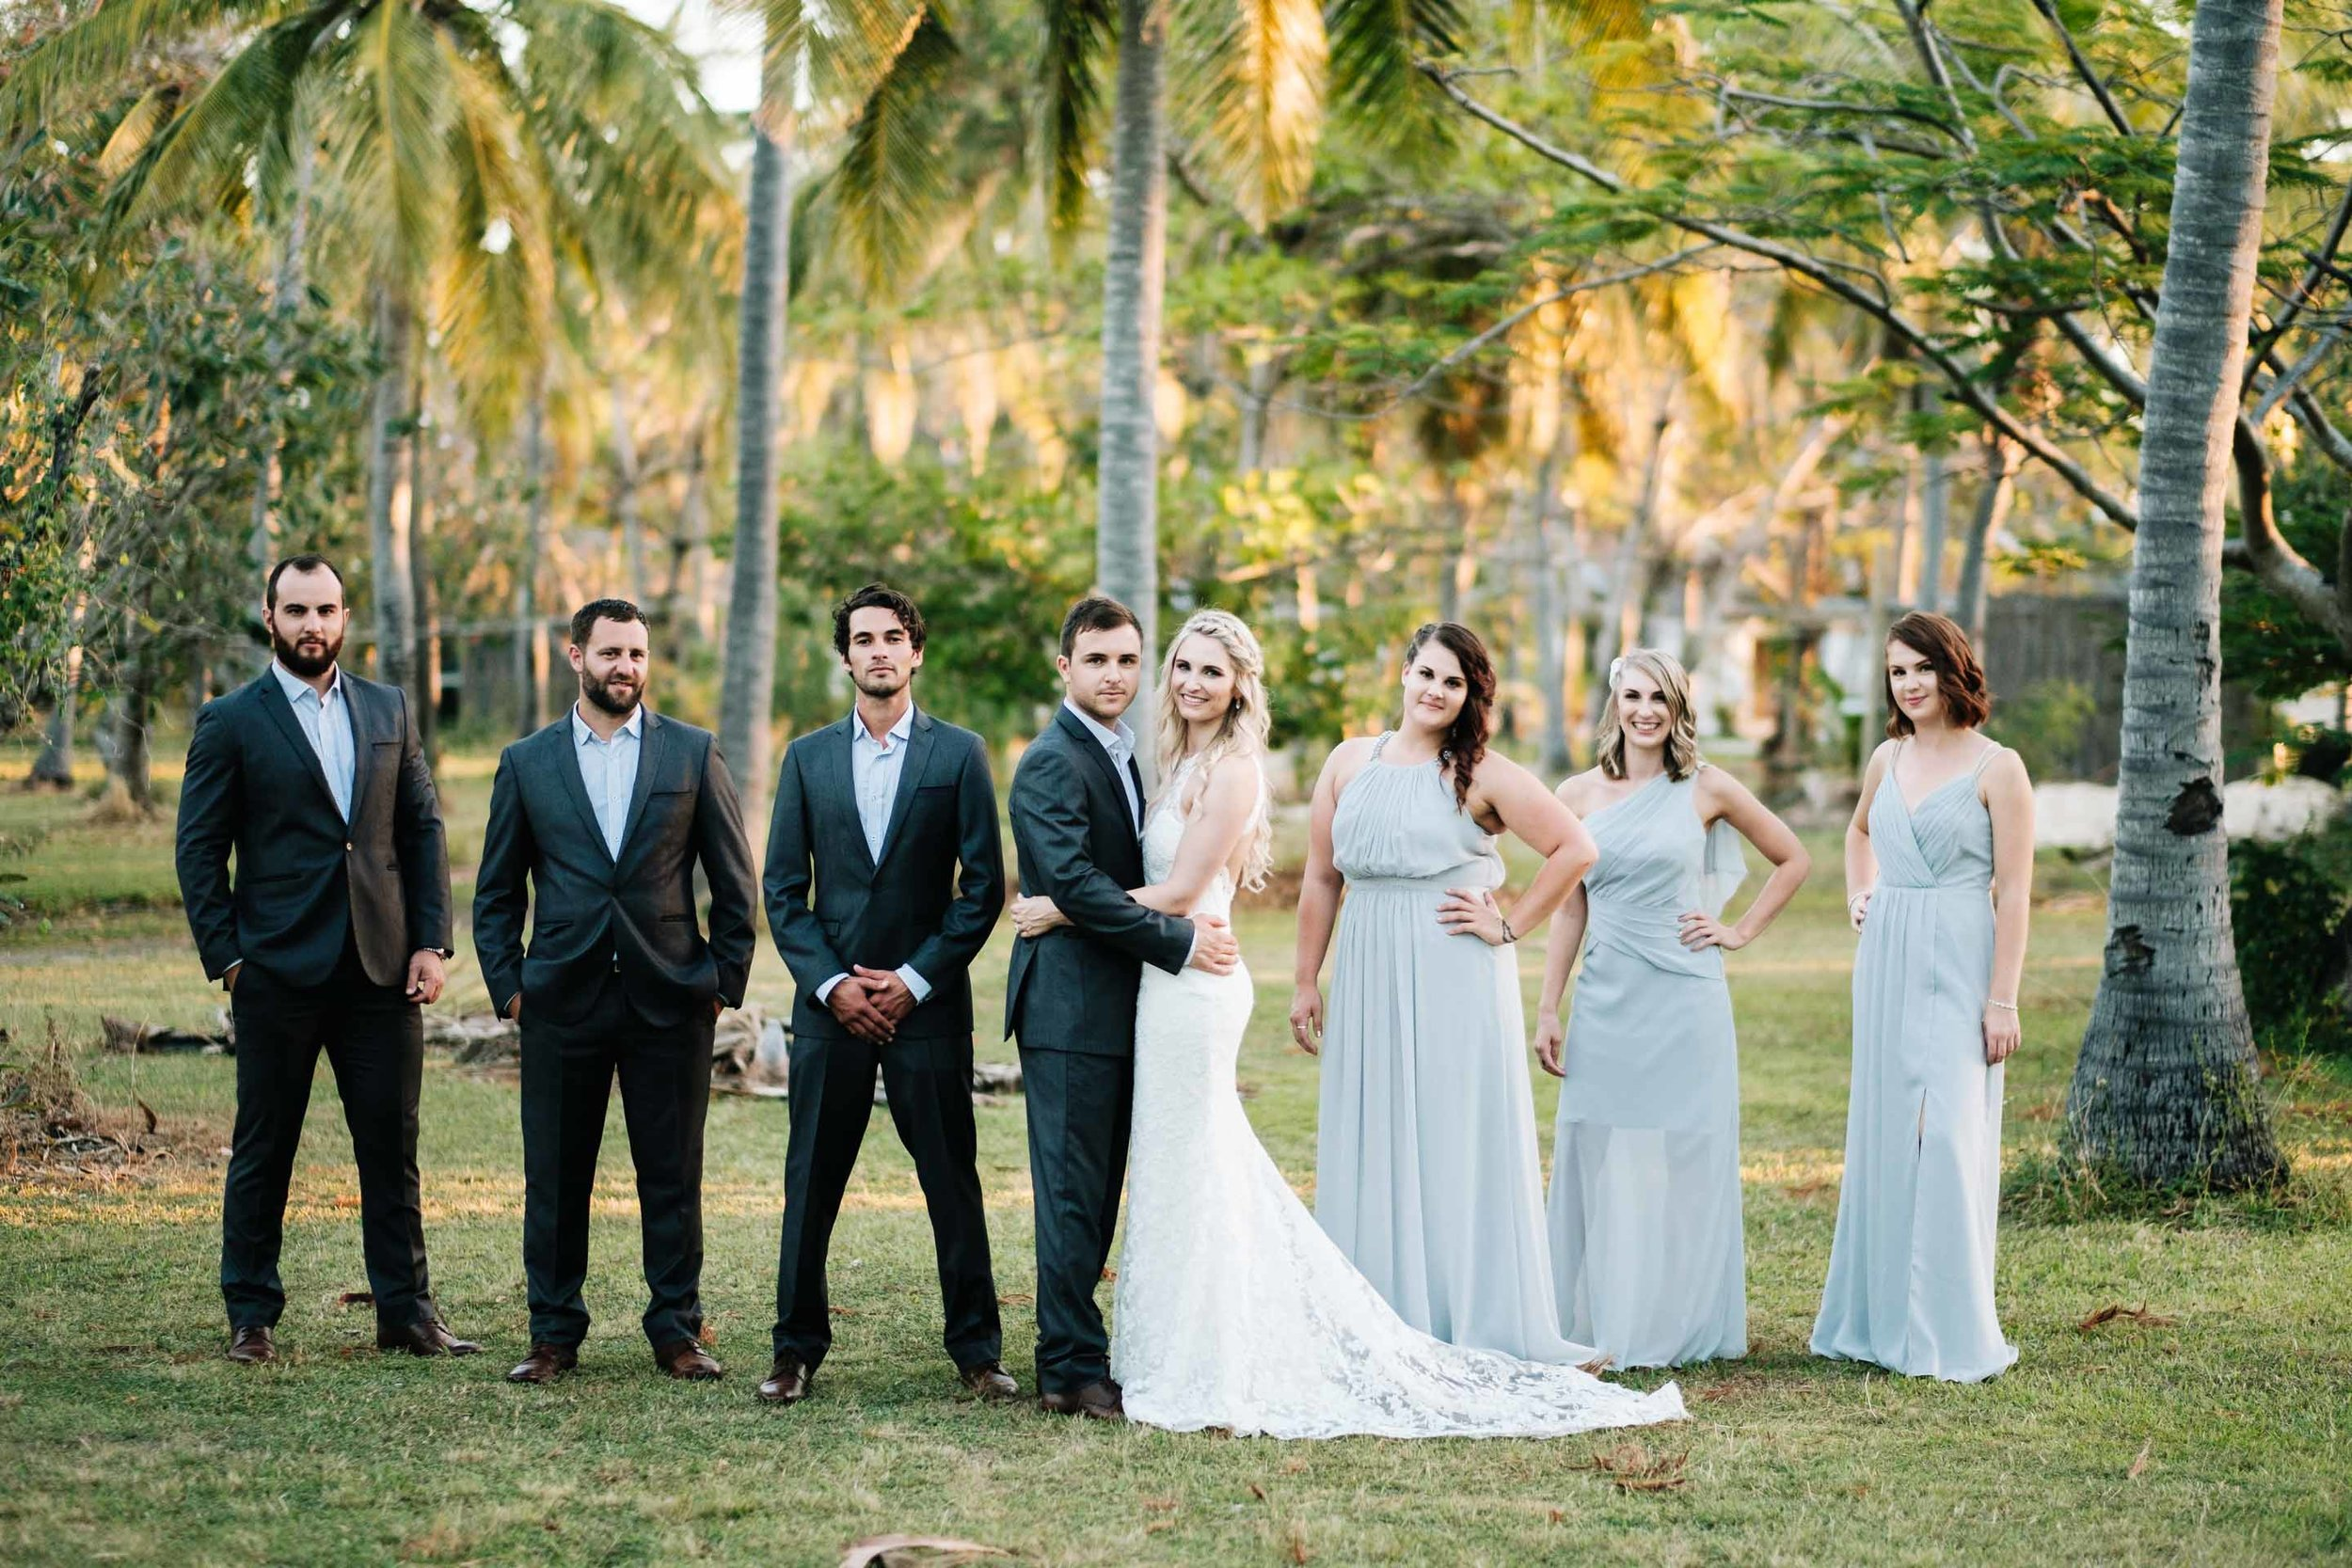 the bridal party together in the grounds behind Lomani Island Resort